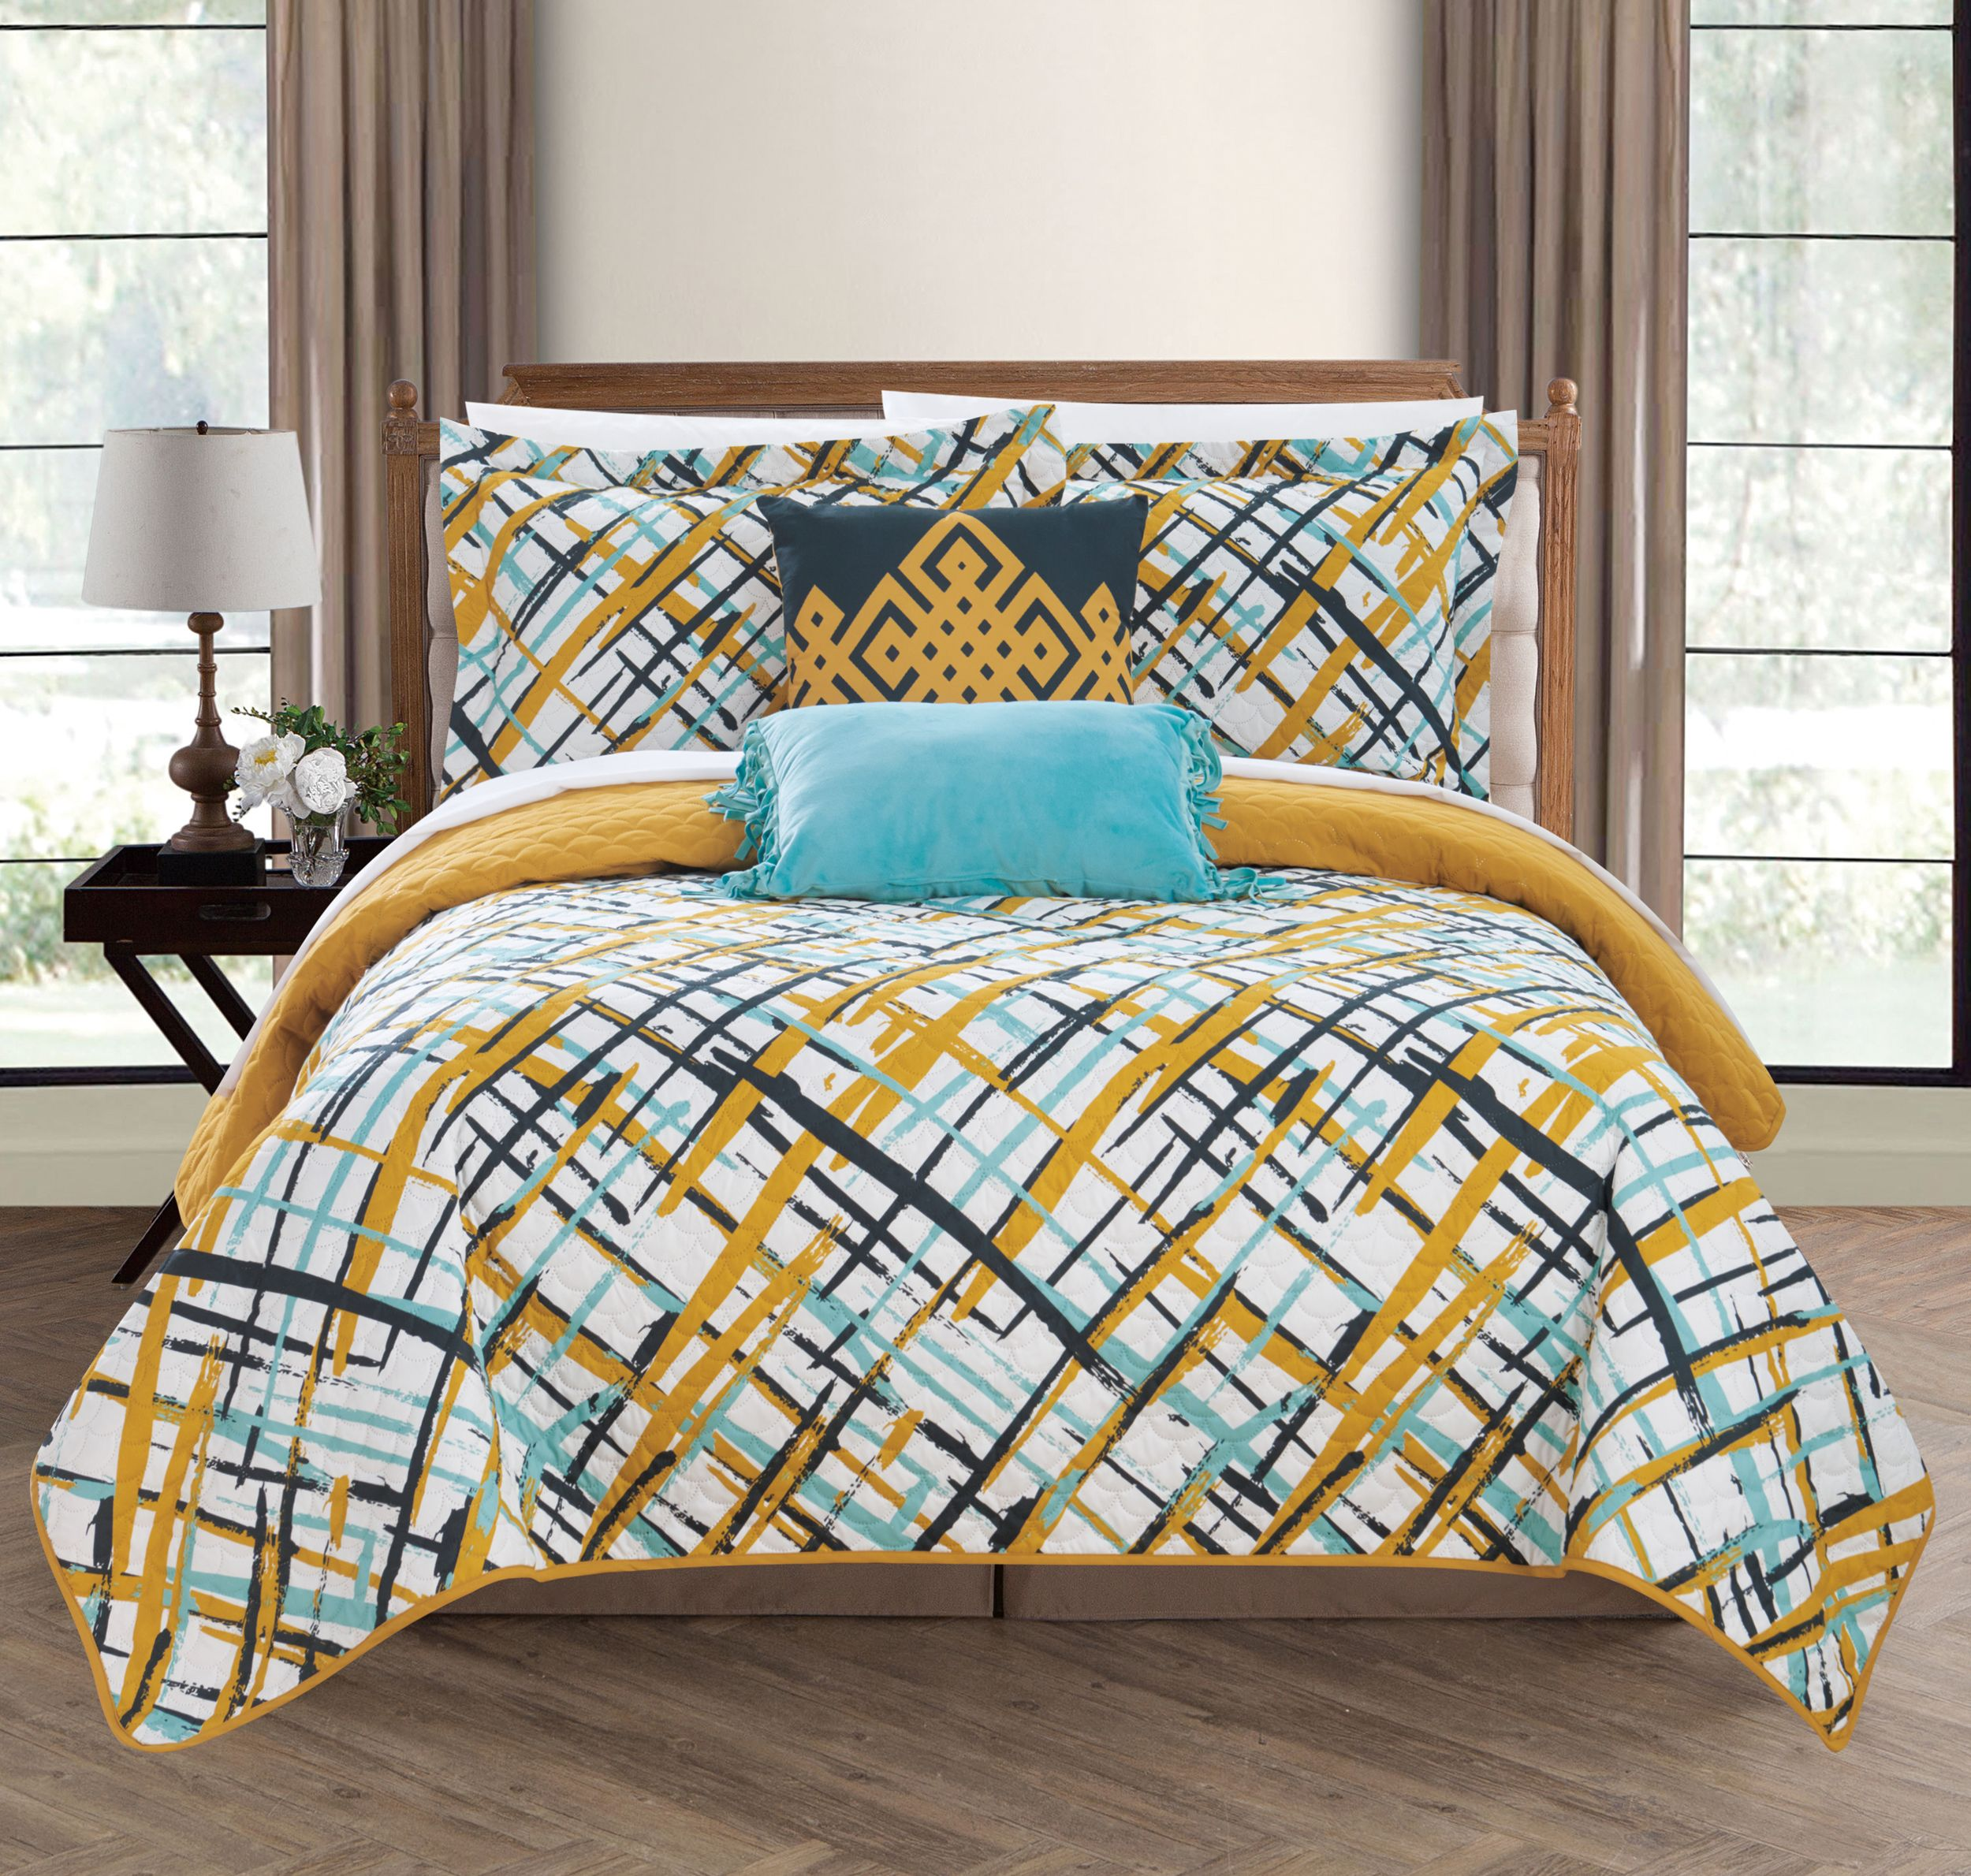 Chic Home Shane 5 Piece Reversible Quilt Set Abstract Design Coverlet Bedding